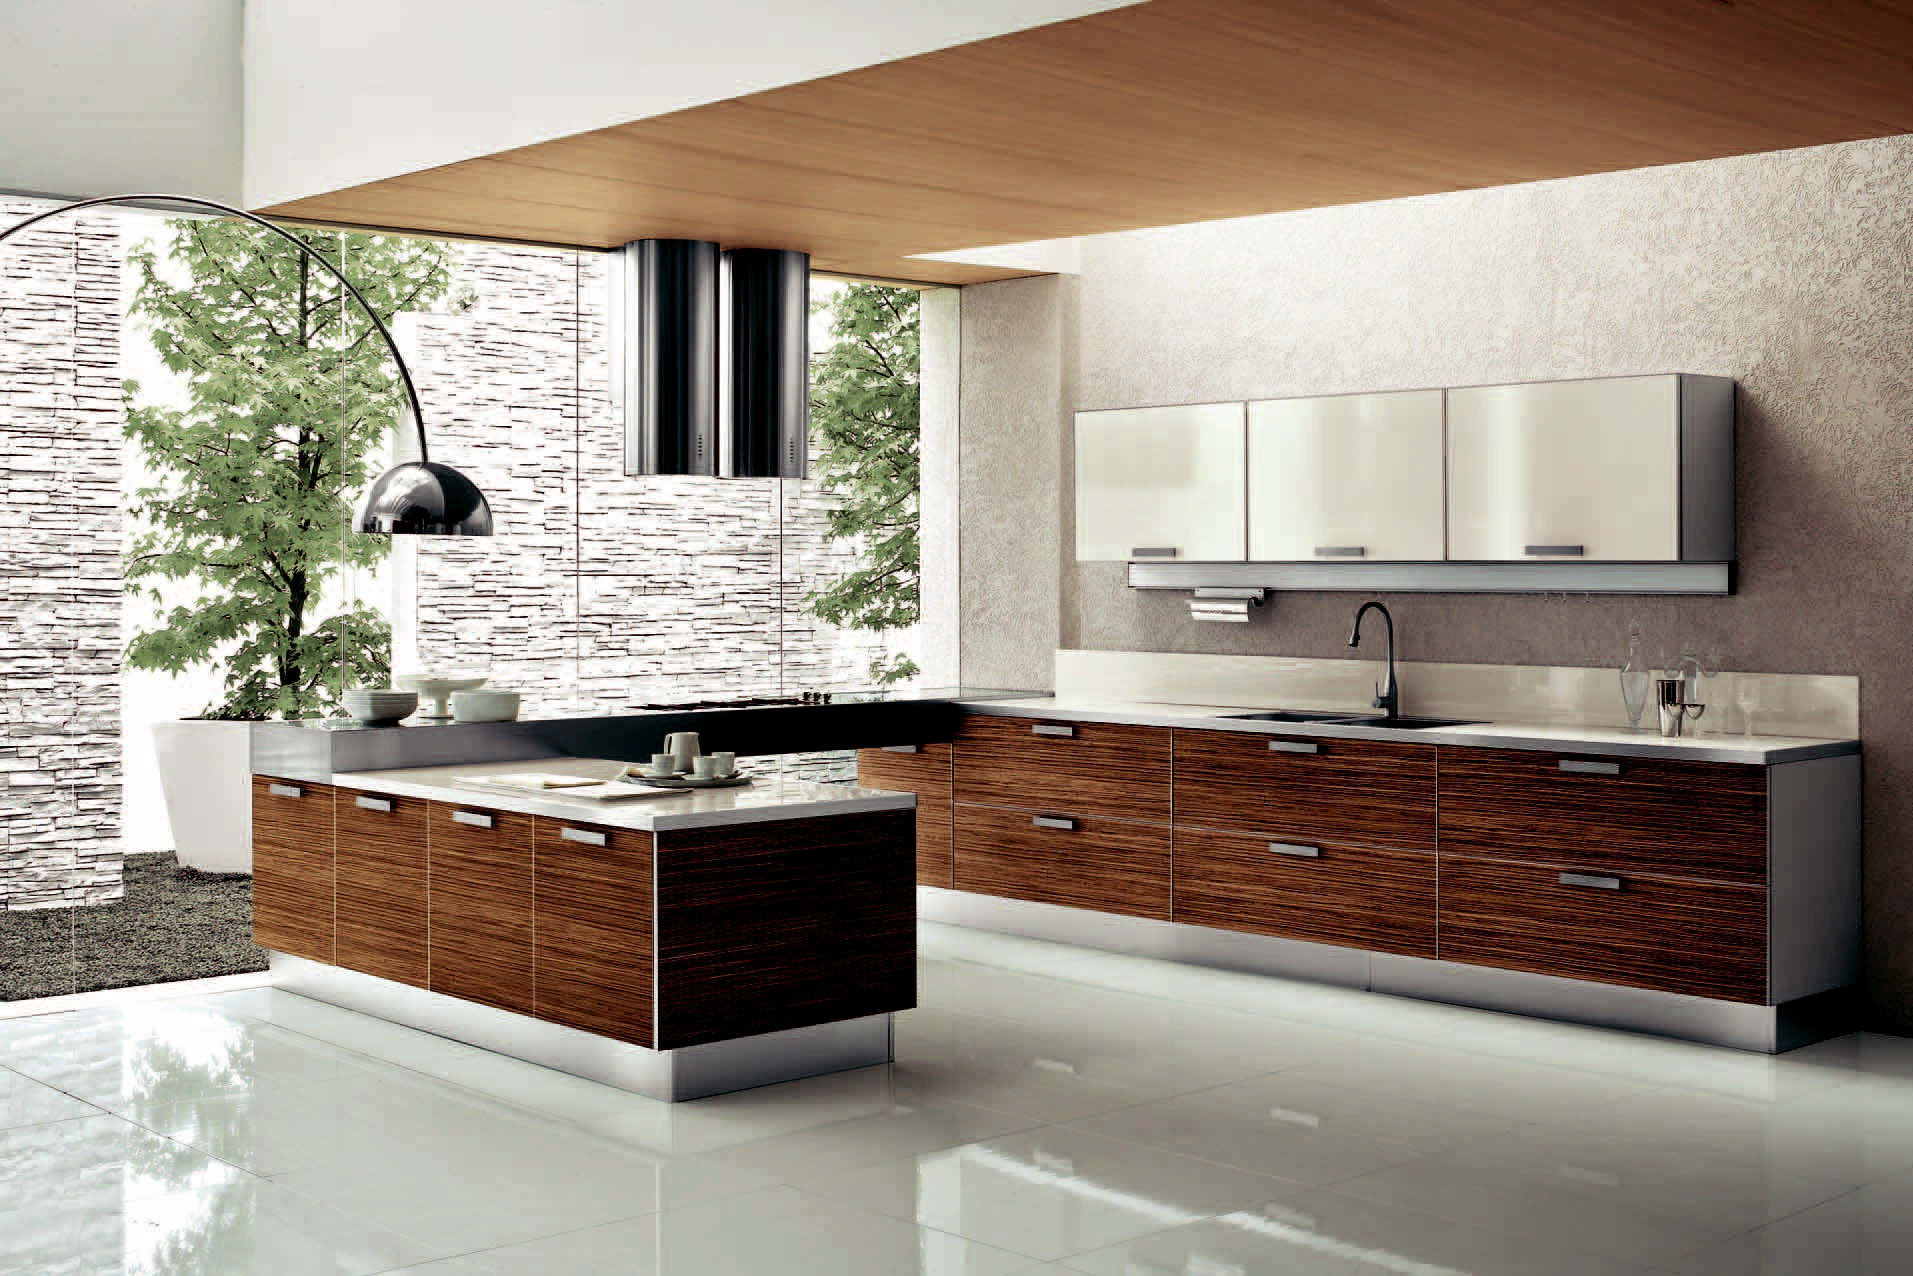 Beyond kitchens kitchen cupboards cape town kitchens for Modern kitchen design